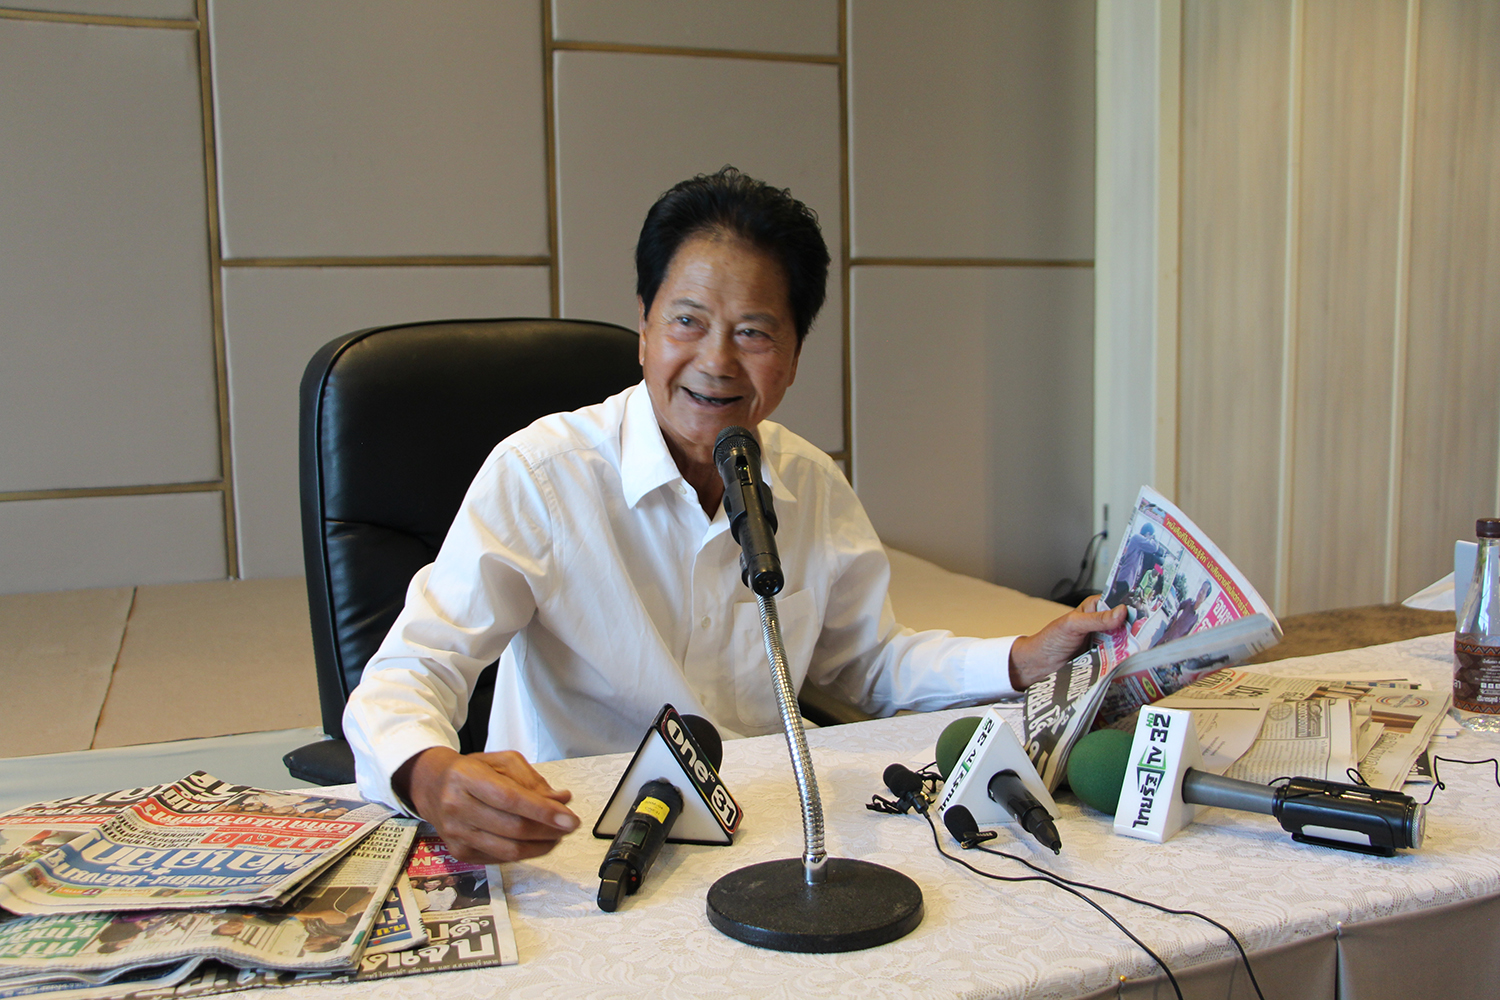 Veteran politician Thawee Kraikupt talks to the press on Sunday, denying a report that he was trying to escape after his car hit a motorcyle in Photharam district of Ratchaburi province. (Photo by Saichol Srinuanchan)